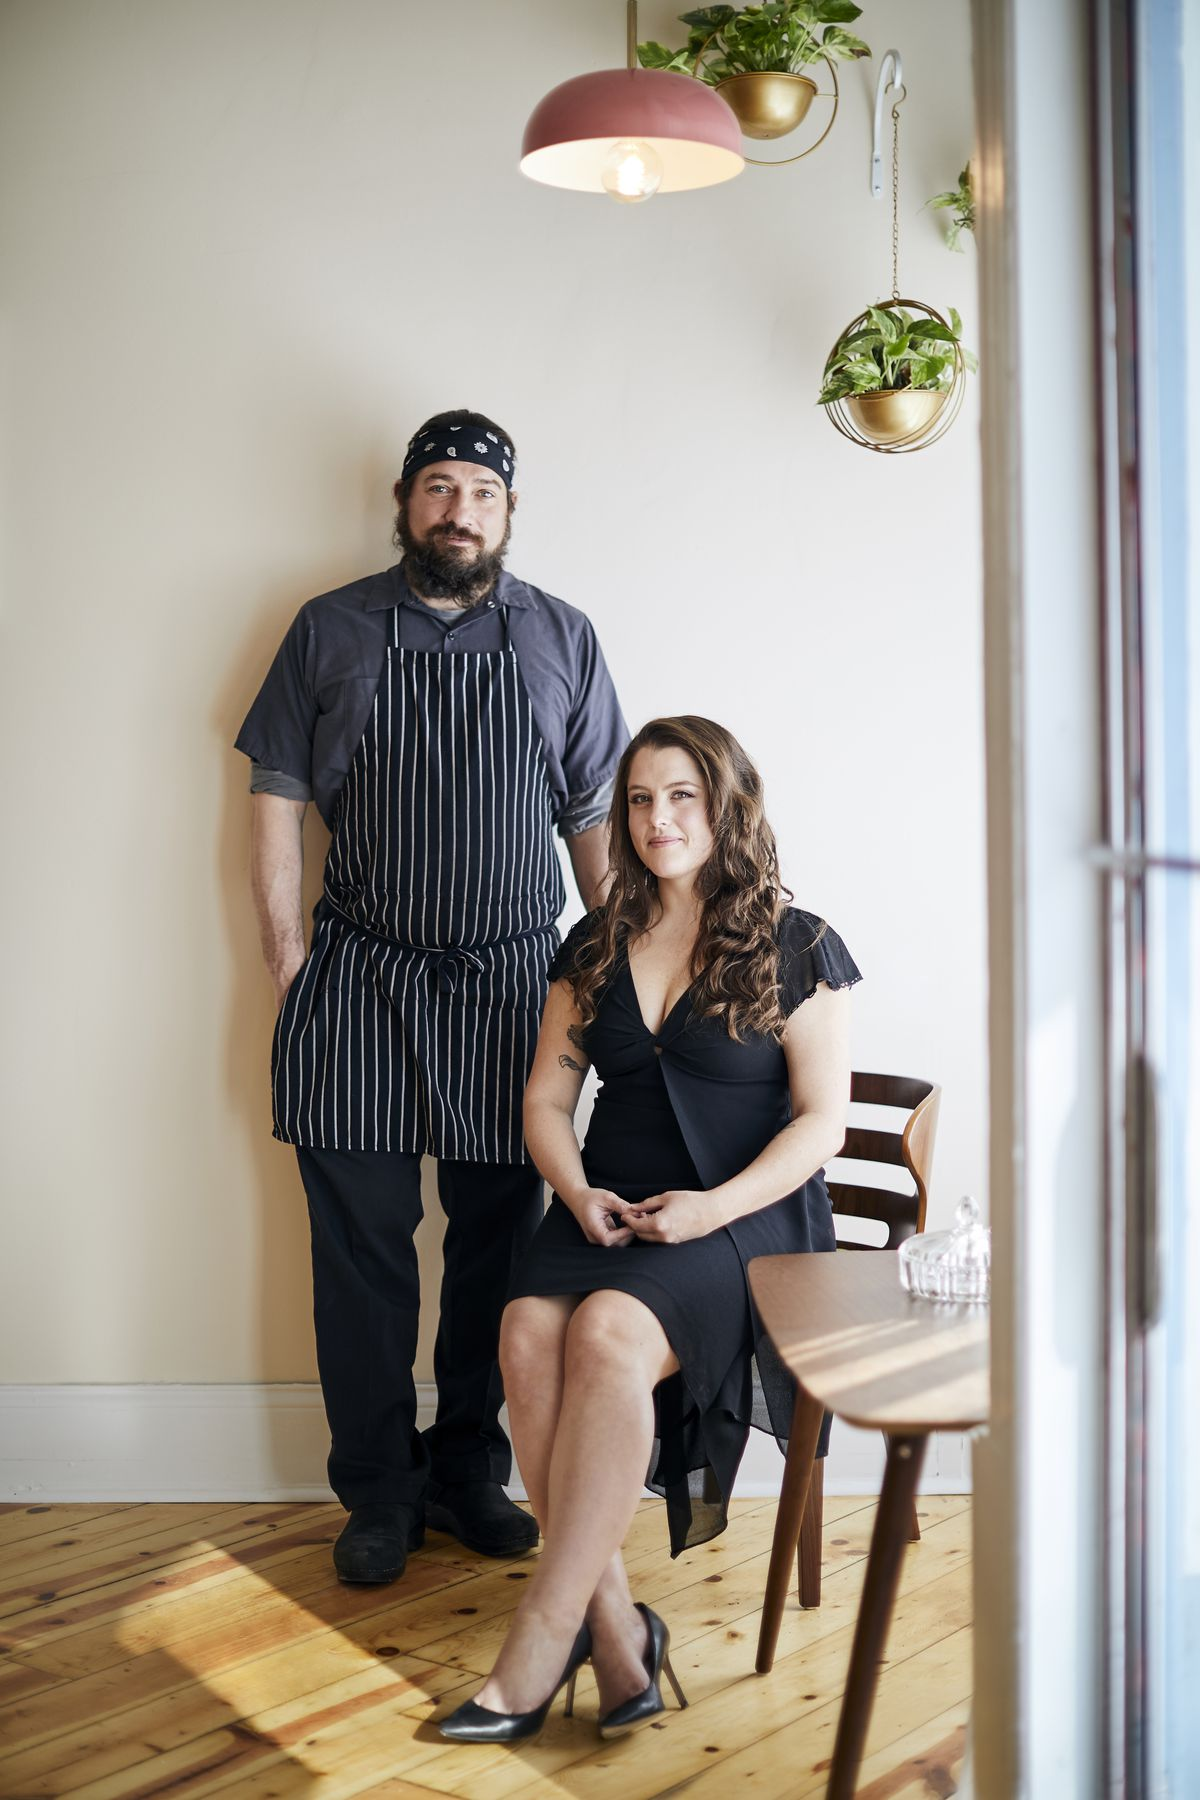 A male chef stands behind a woman who is seated